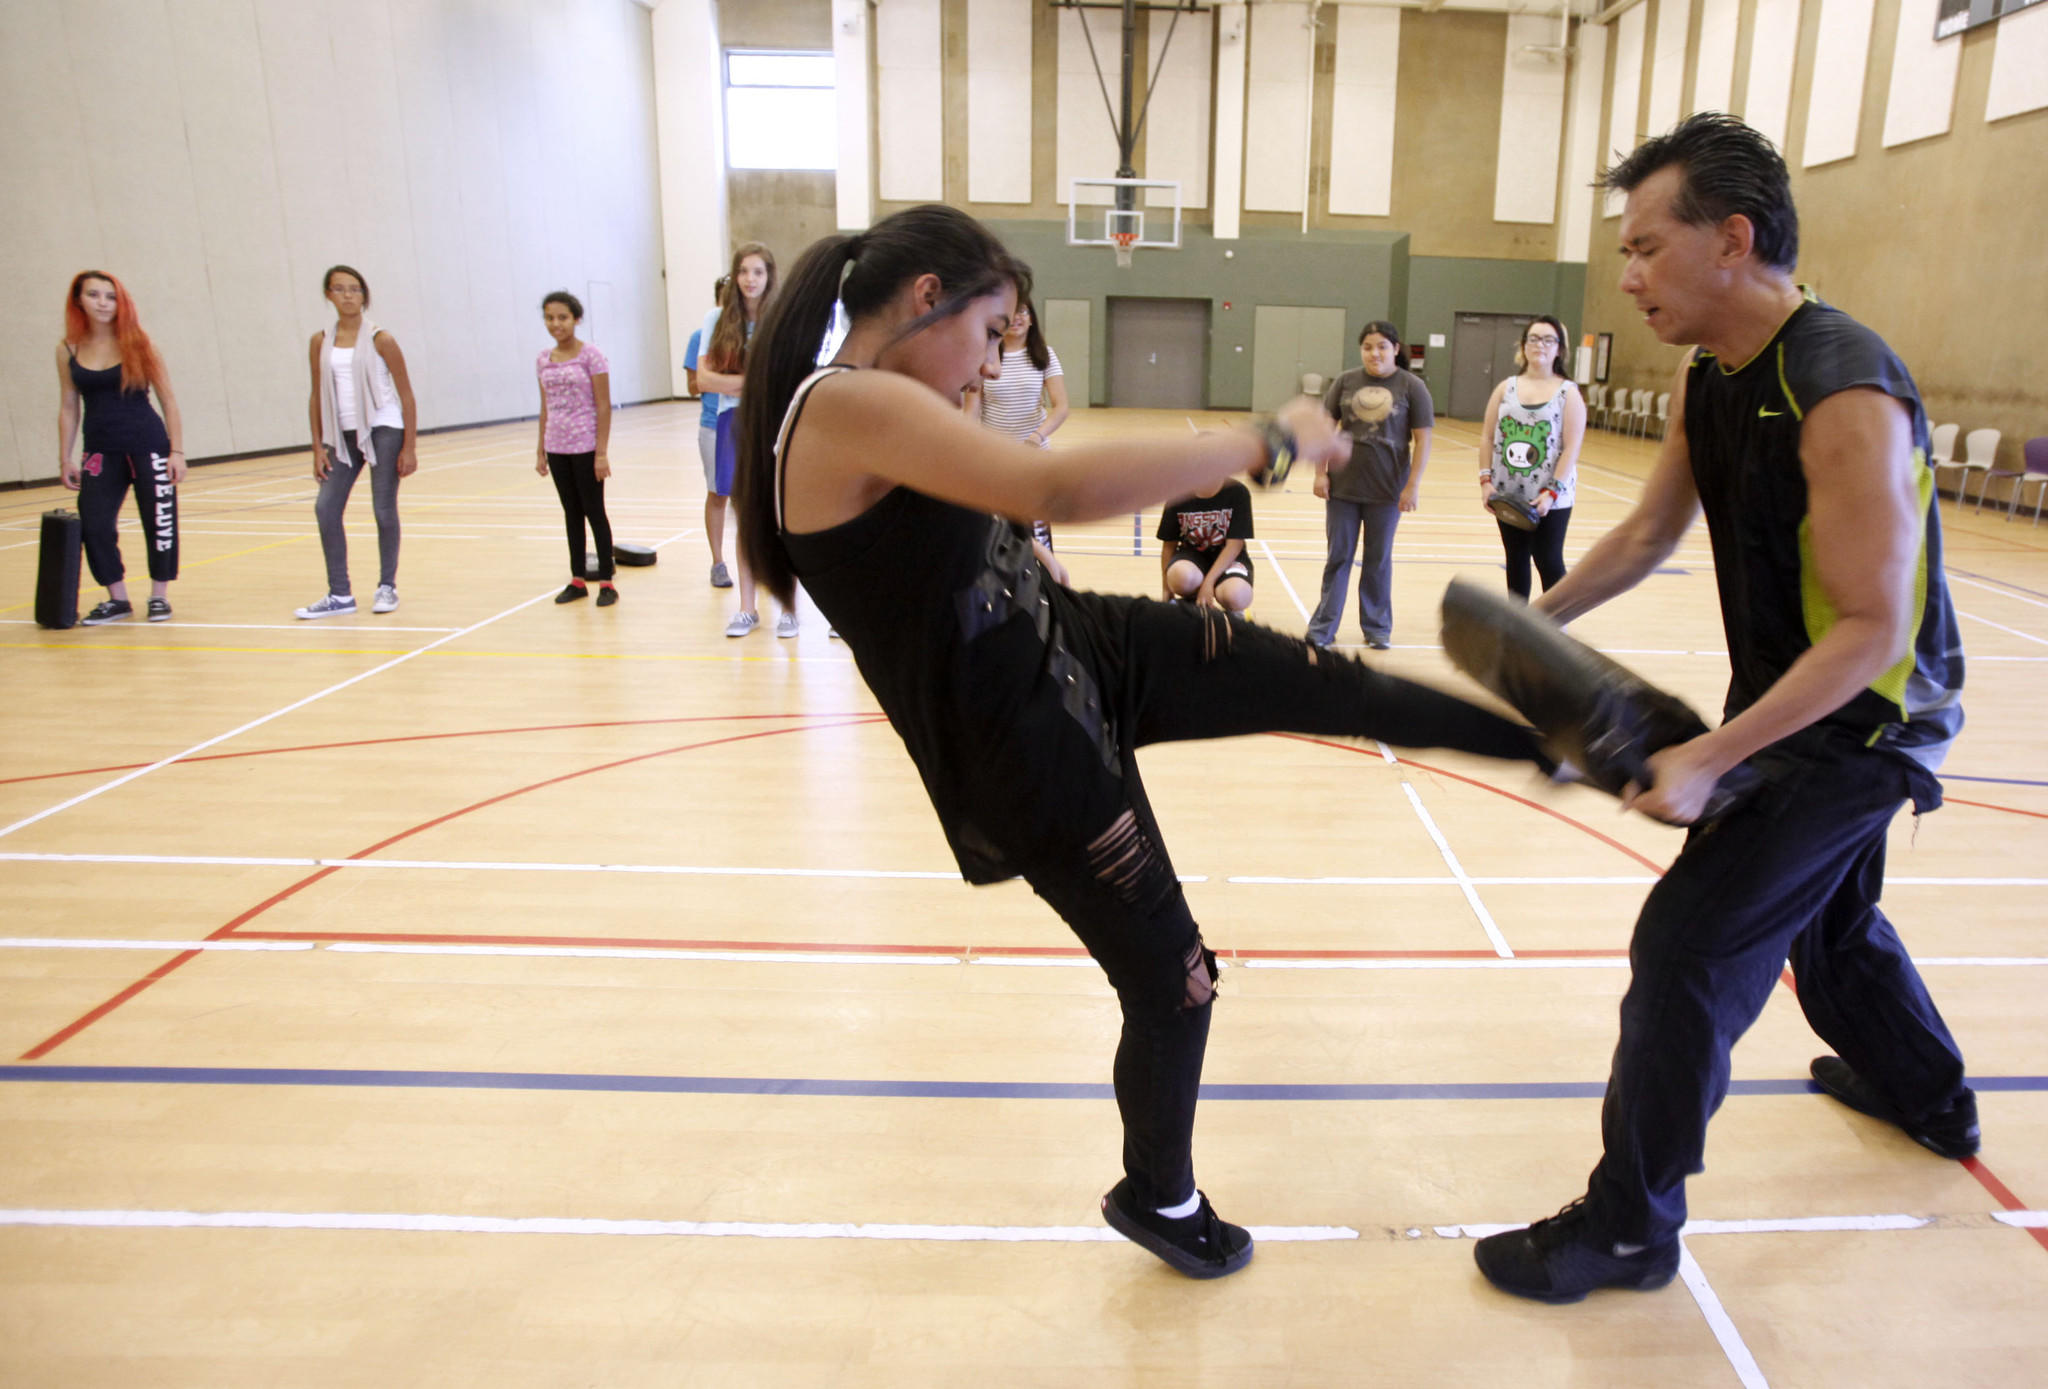 Alexandria Meneses, 15, of Burbank, learns self-defense techniques from instructor Nelson Nio at Pacific Community Center in Glendale on Tuesday, July 16, 2013.